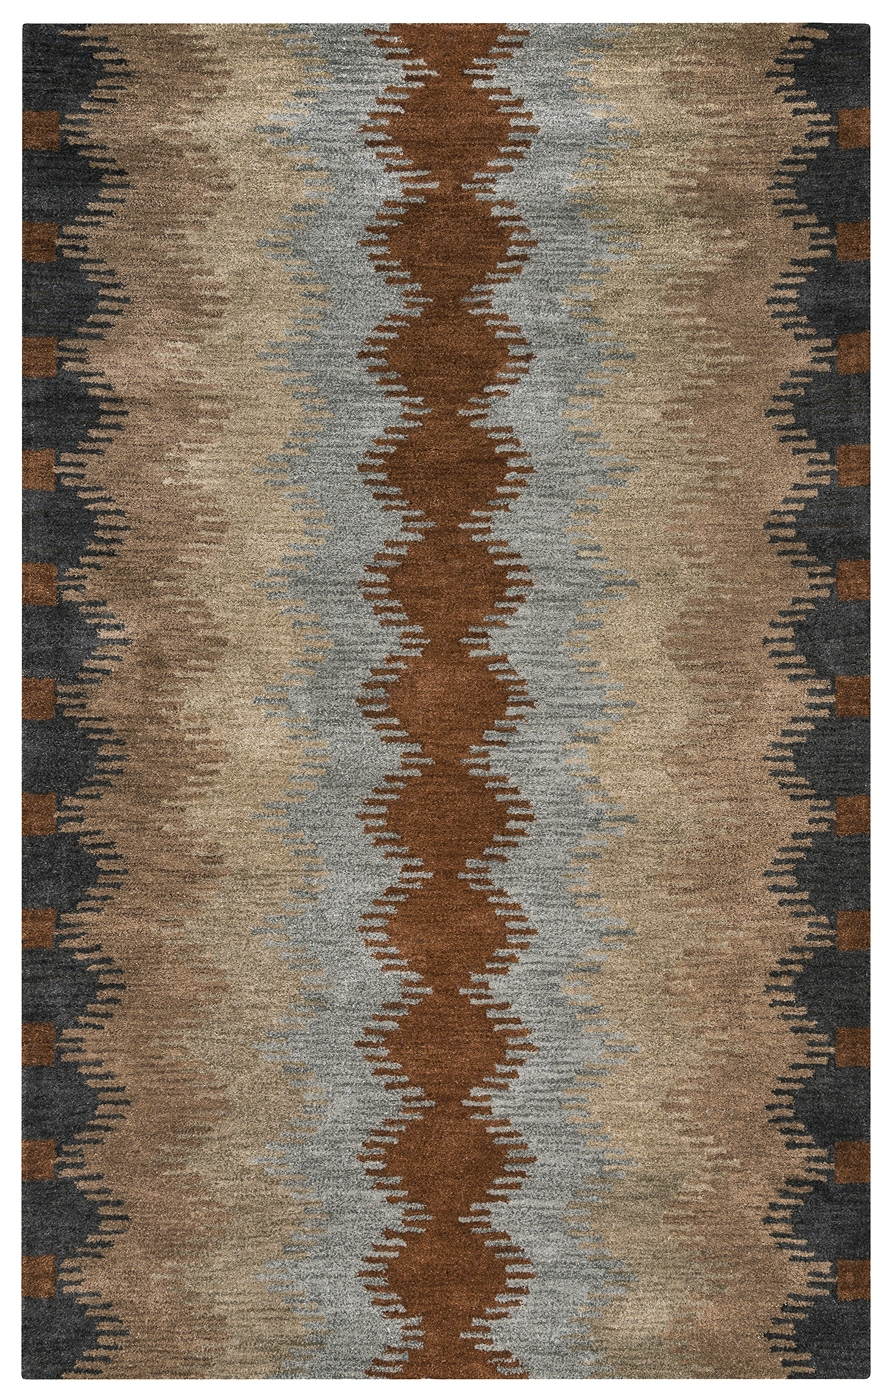 Tumble Weed Loft Tribal Ripples Wool Area Rug In Gray